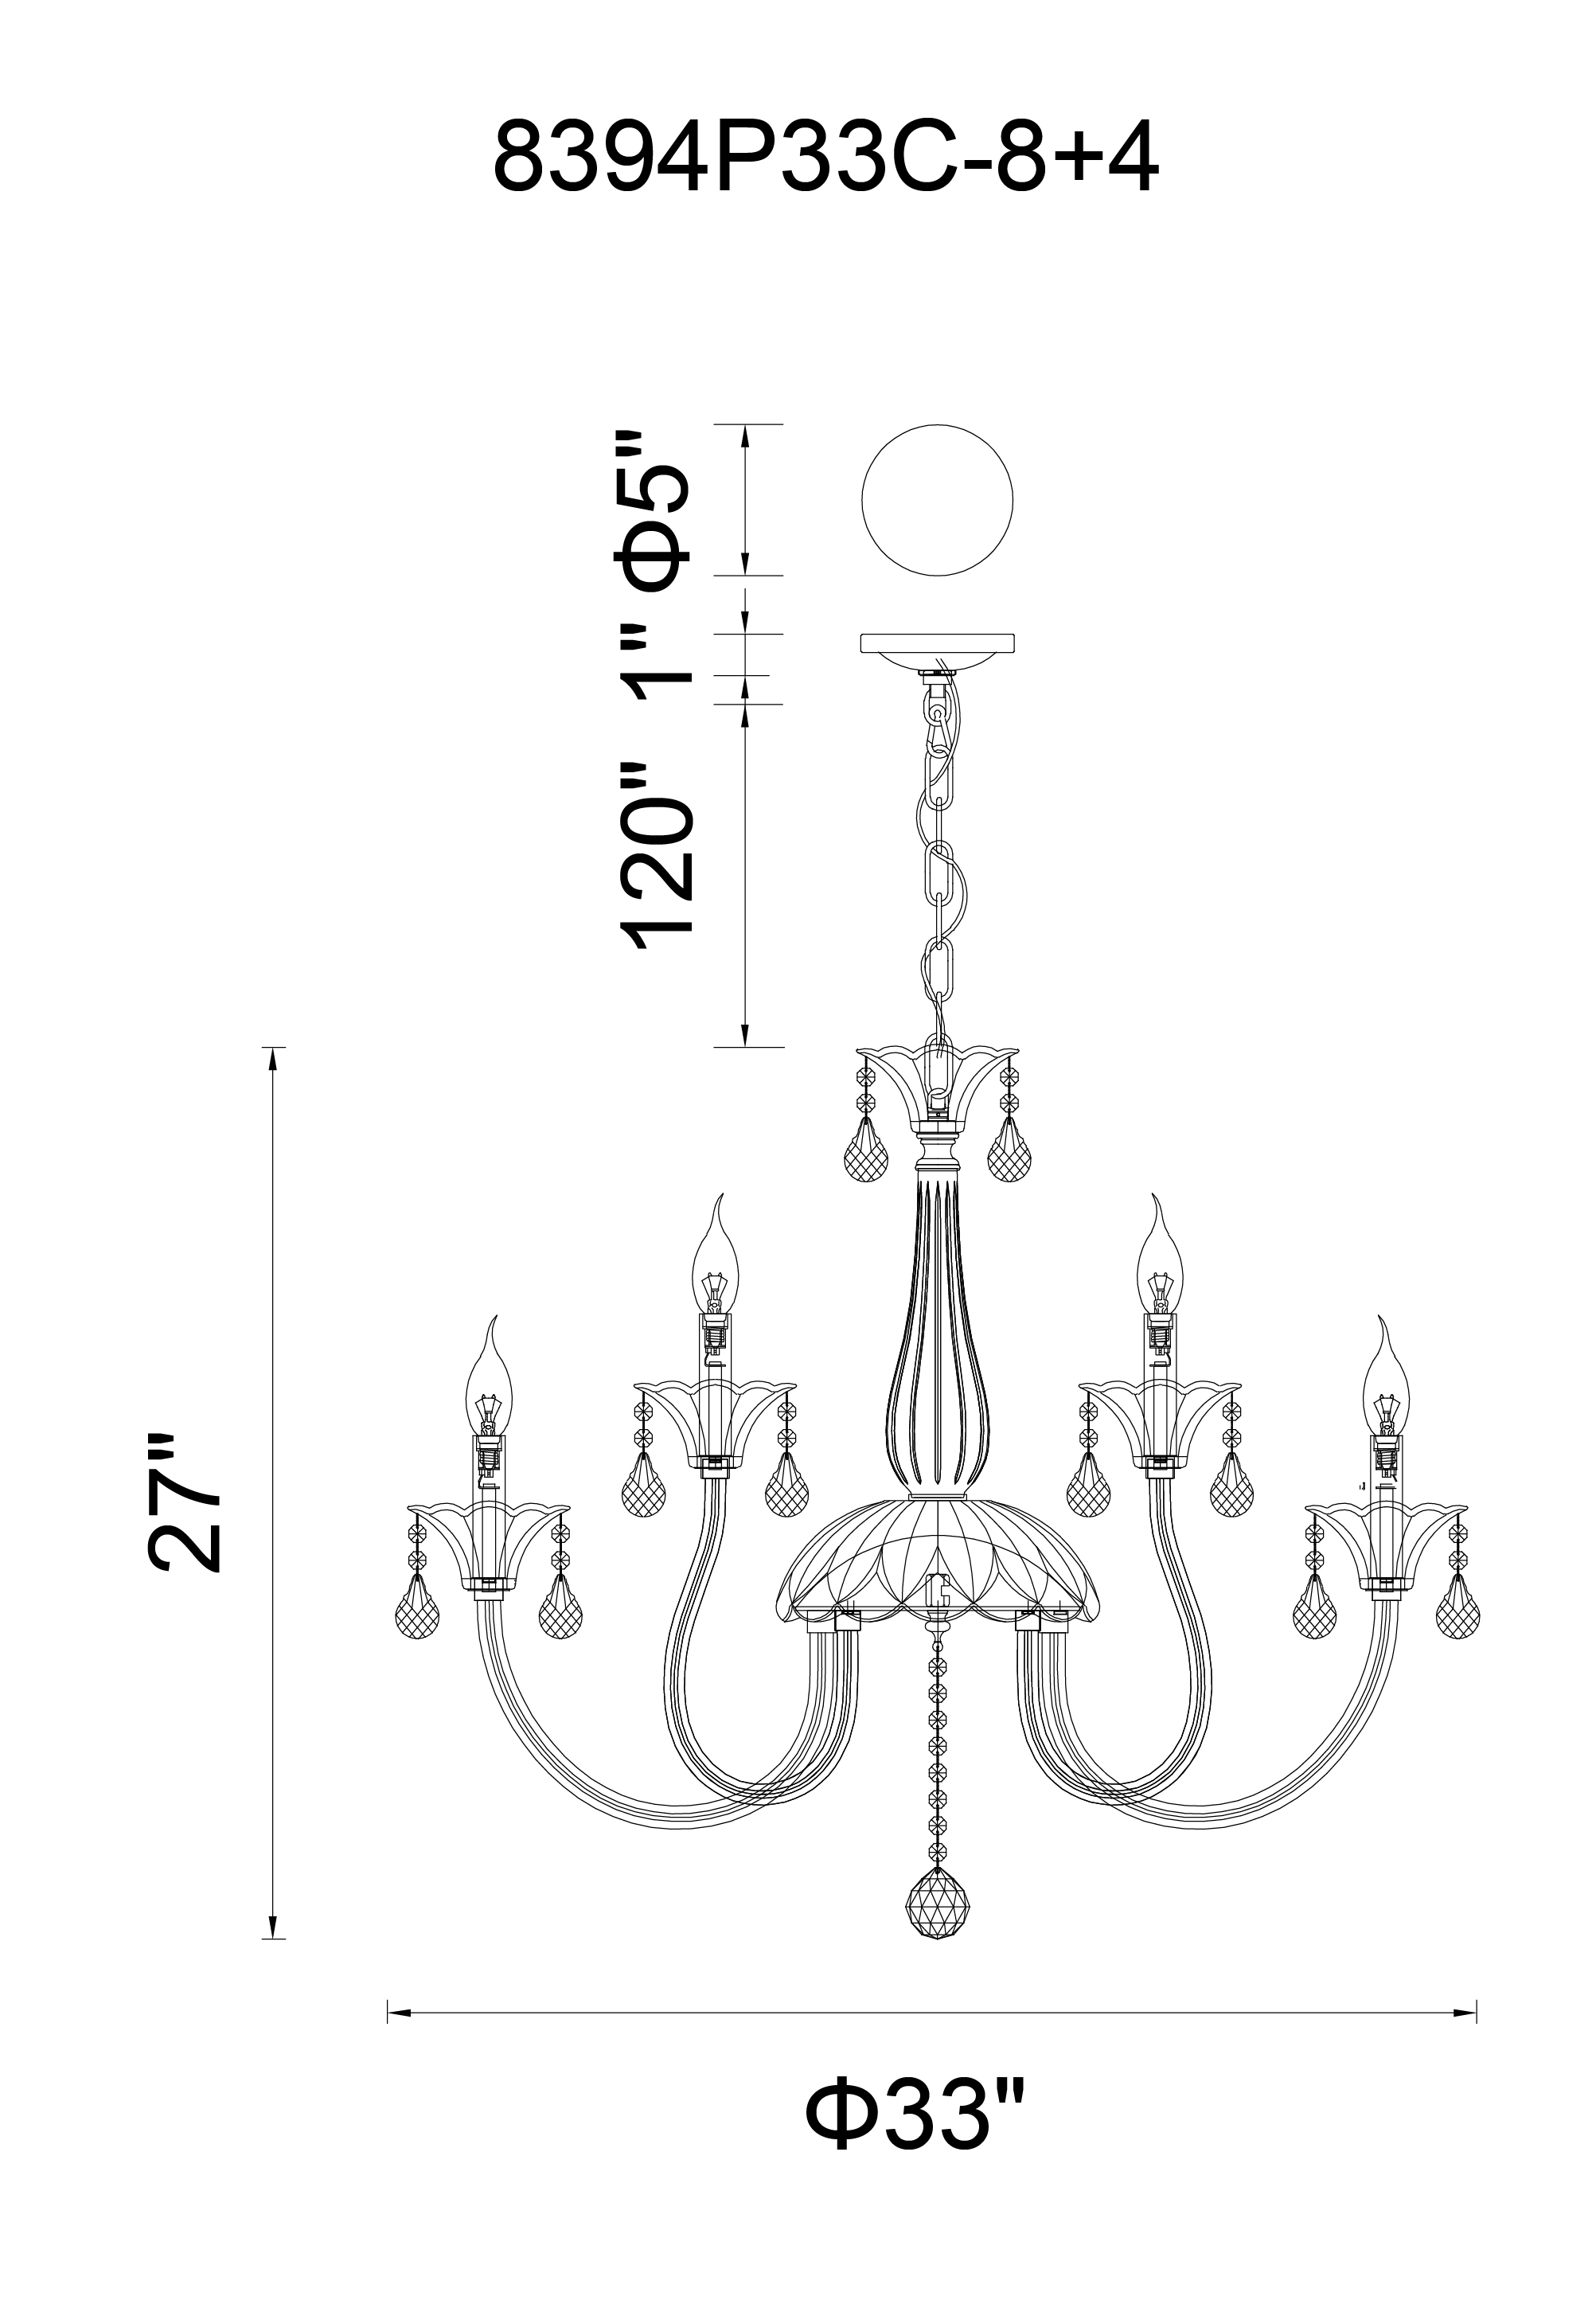 CWI Lighting Melanie 12 Light Up Chandelier With Chrome Finish Model: 8394P33C-12 Line Drawing